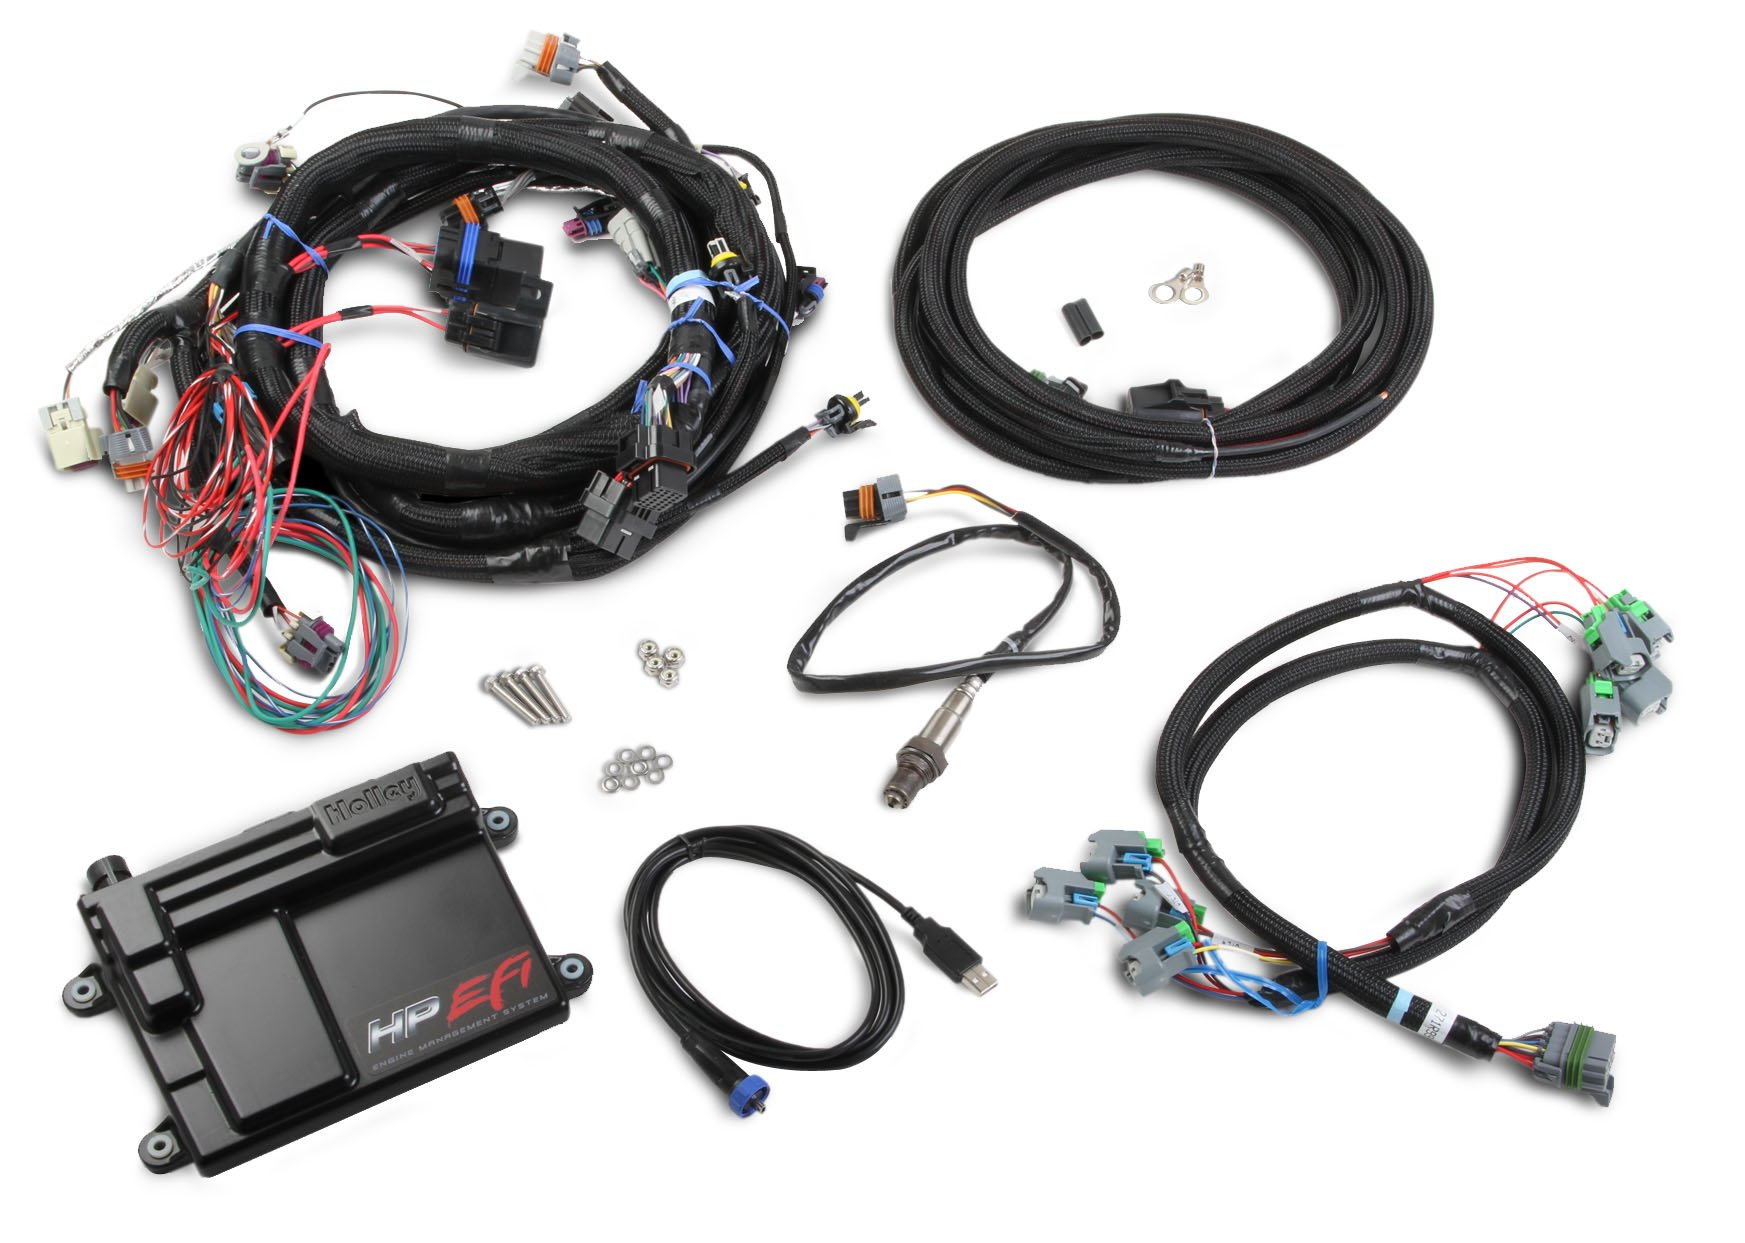 Holley Efi 550 603 Hp Ecu Harness Kits 87 Corvette Cold Start Injector Wiring Diagram Image